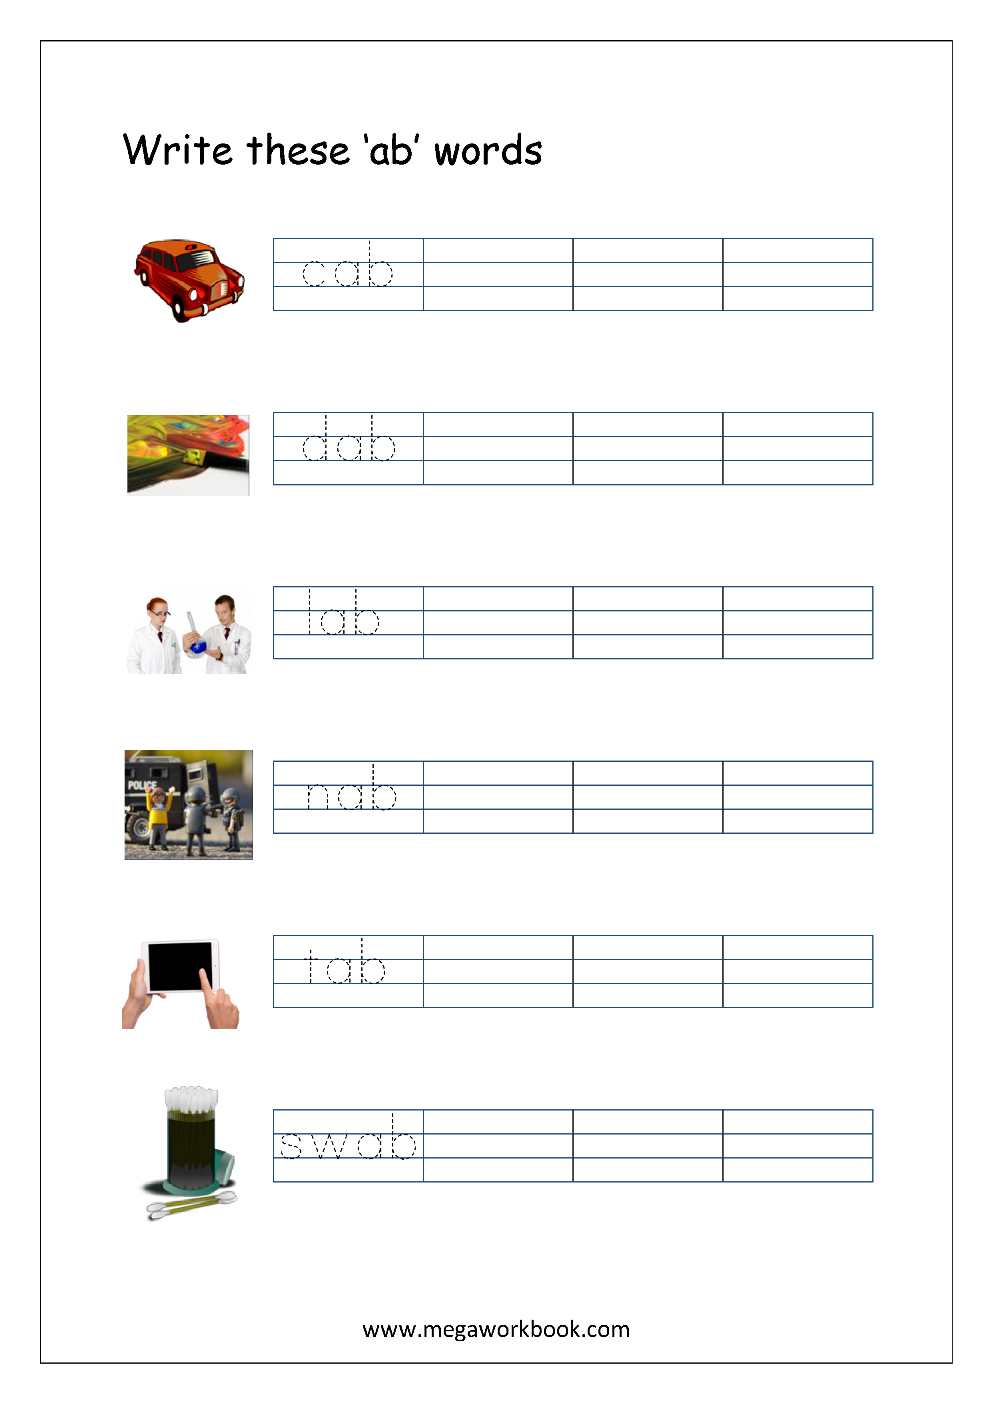 Free Printable Cvc Words Writing Worksheets For Kids Three Letter Rhyming Words For Kindergarten Megaworkbook - 45+ Free Printable Cvc Words Worksheets For Kindergarten Gif